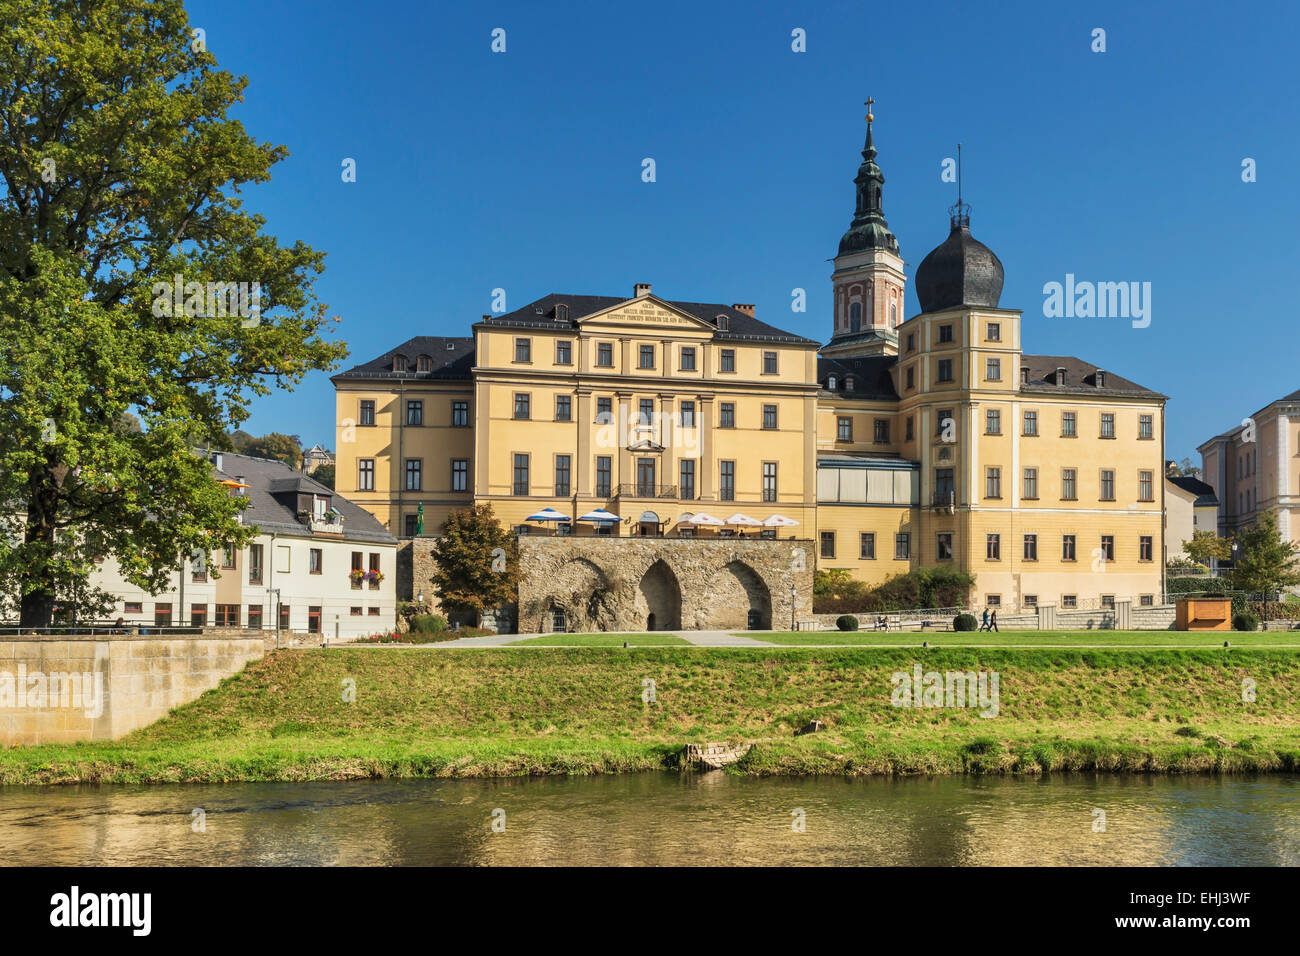 The Lower Castle is situated on the banks of the White Elster, next to the St. Marys Church, Greiz, Thuringia, Germany, - Stock Image